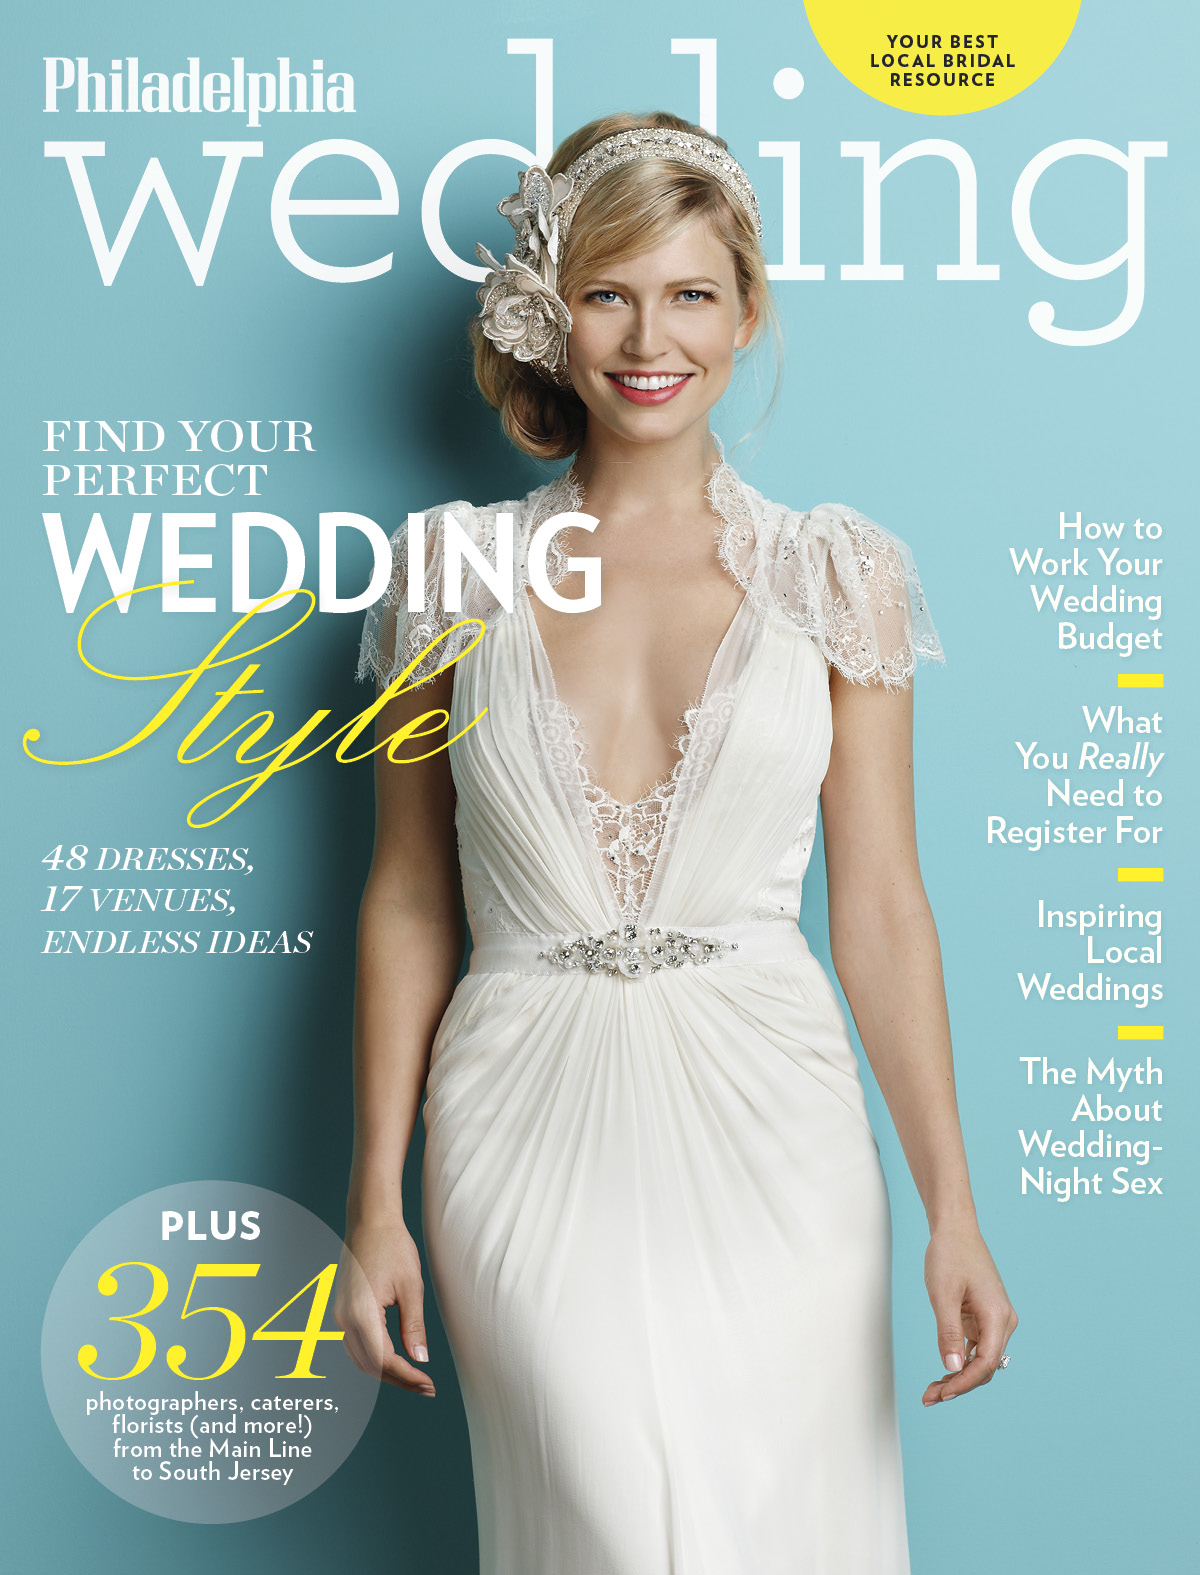 Sneak Peek: Philadelphia Wedding's Spring/Summer 2013 Issue!